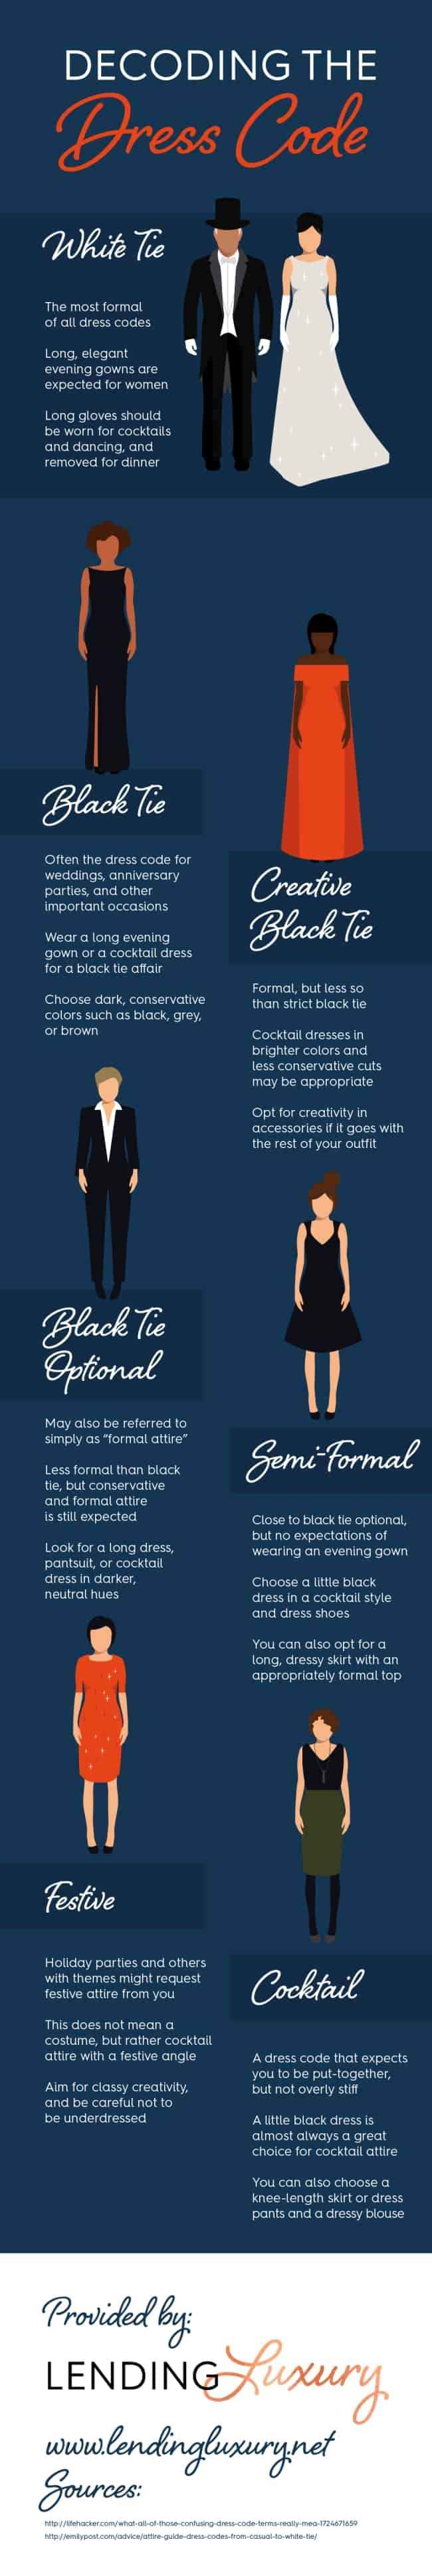 lending-luxury-decoding-the-dress-code-infographic